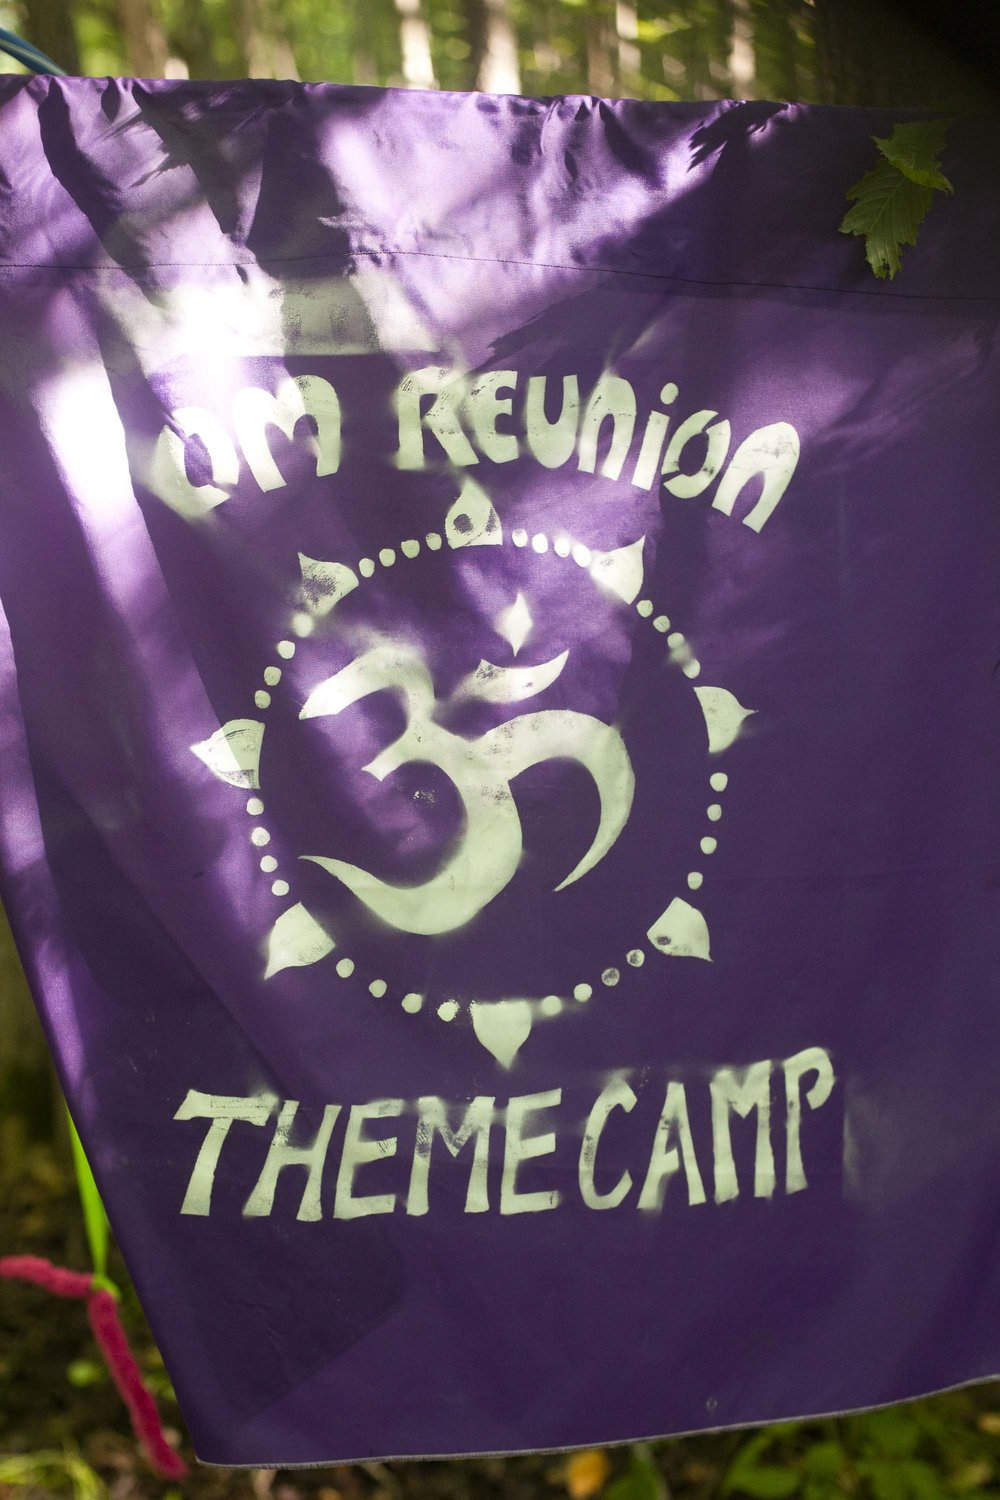 theme camp sign.jpg